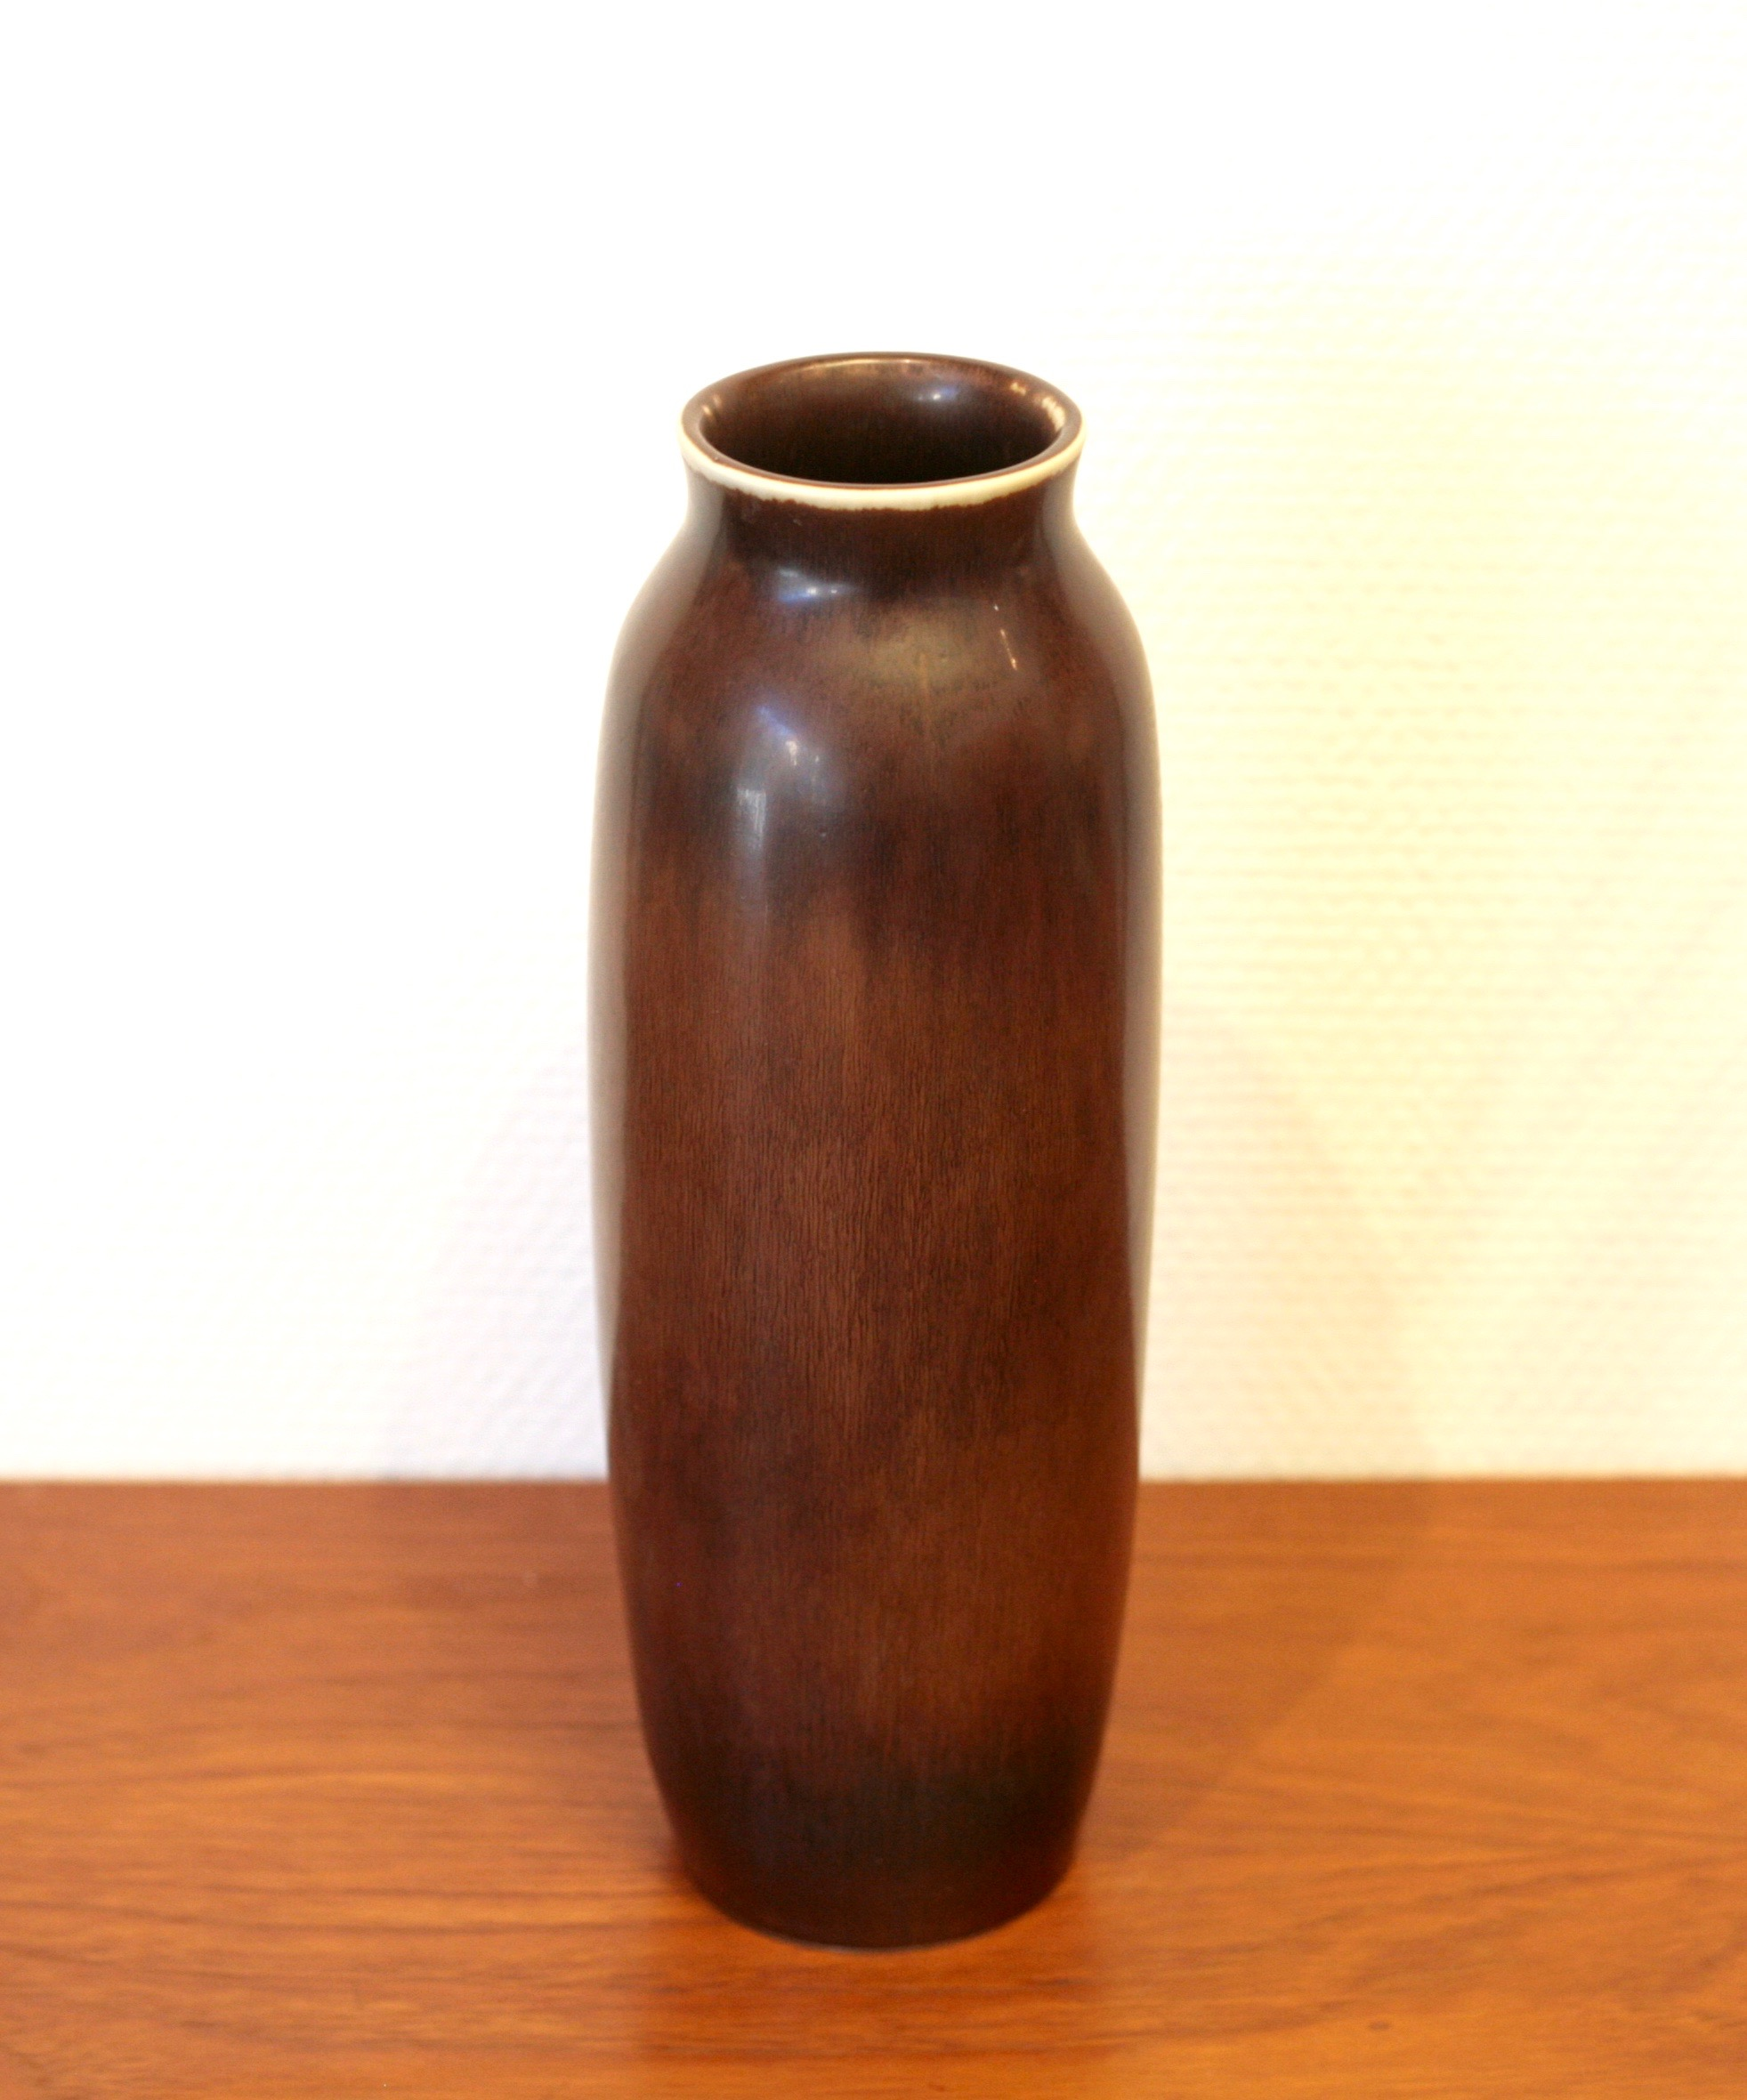 Large stoneware vase by Carl-Harry Stålhane